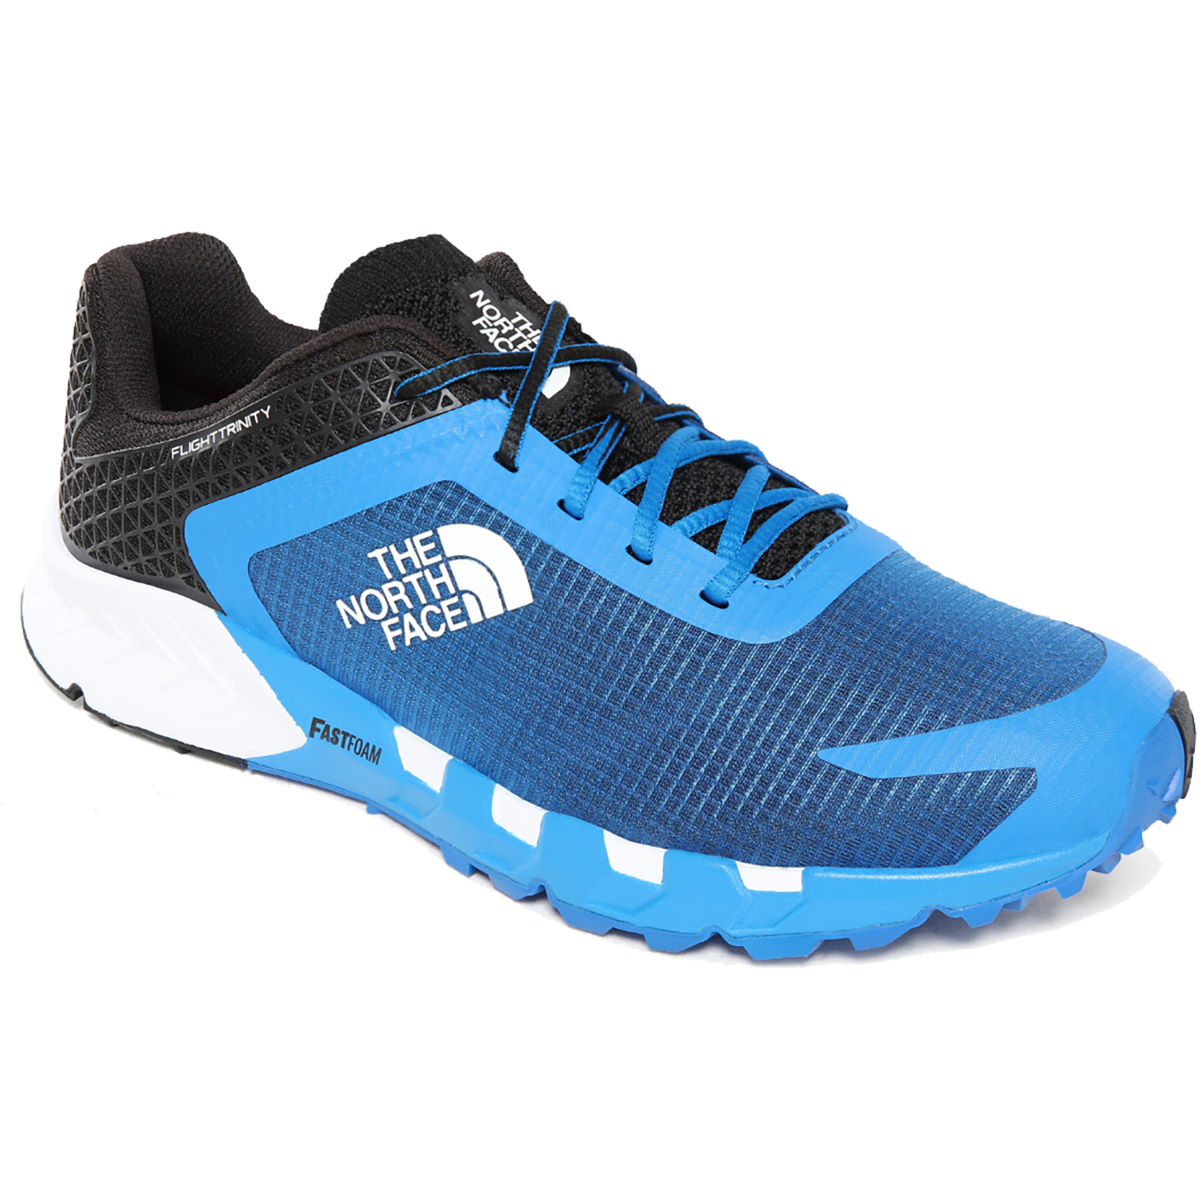 The North Face The North Face Flight Trinity Shoes   Running Shoes